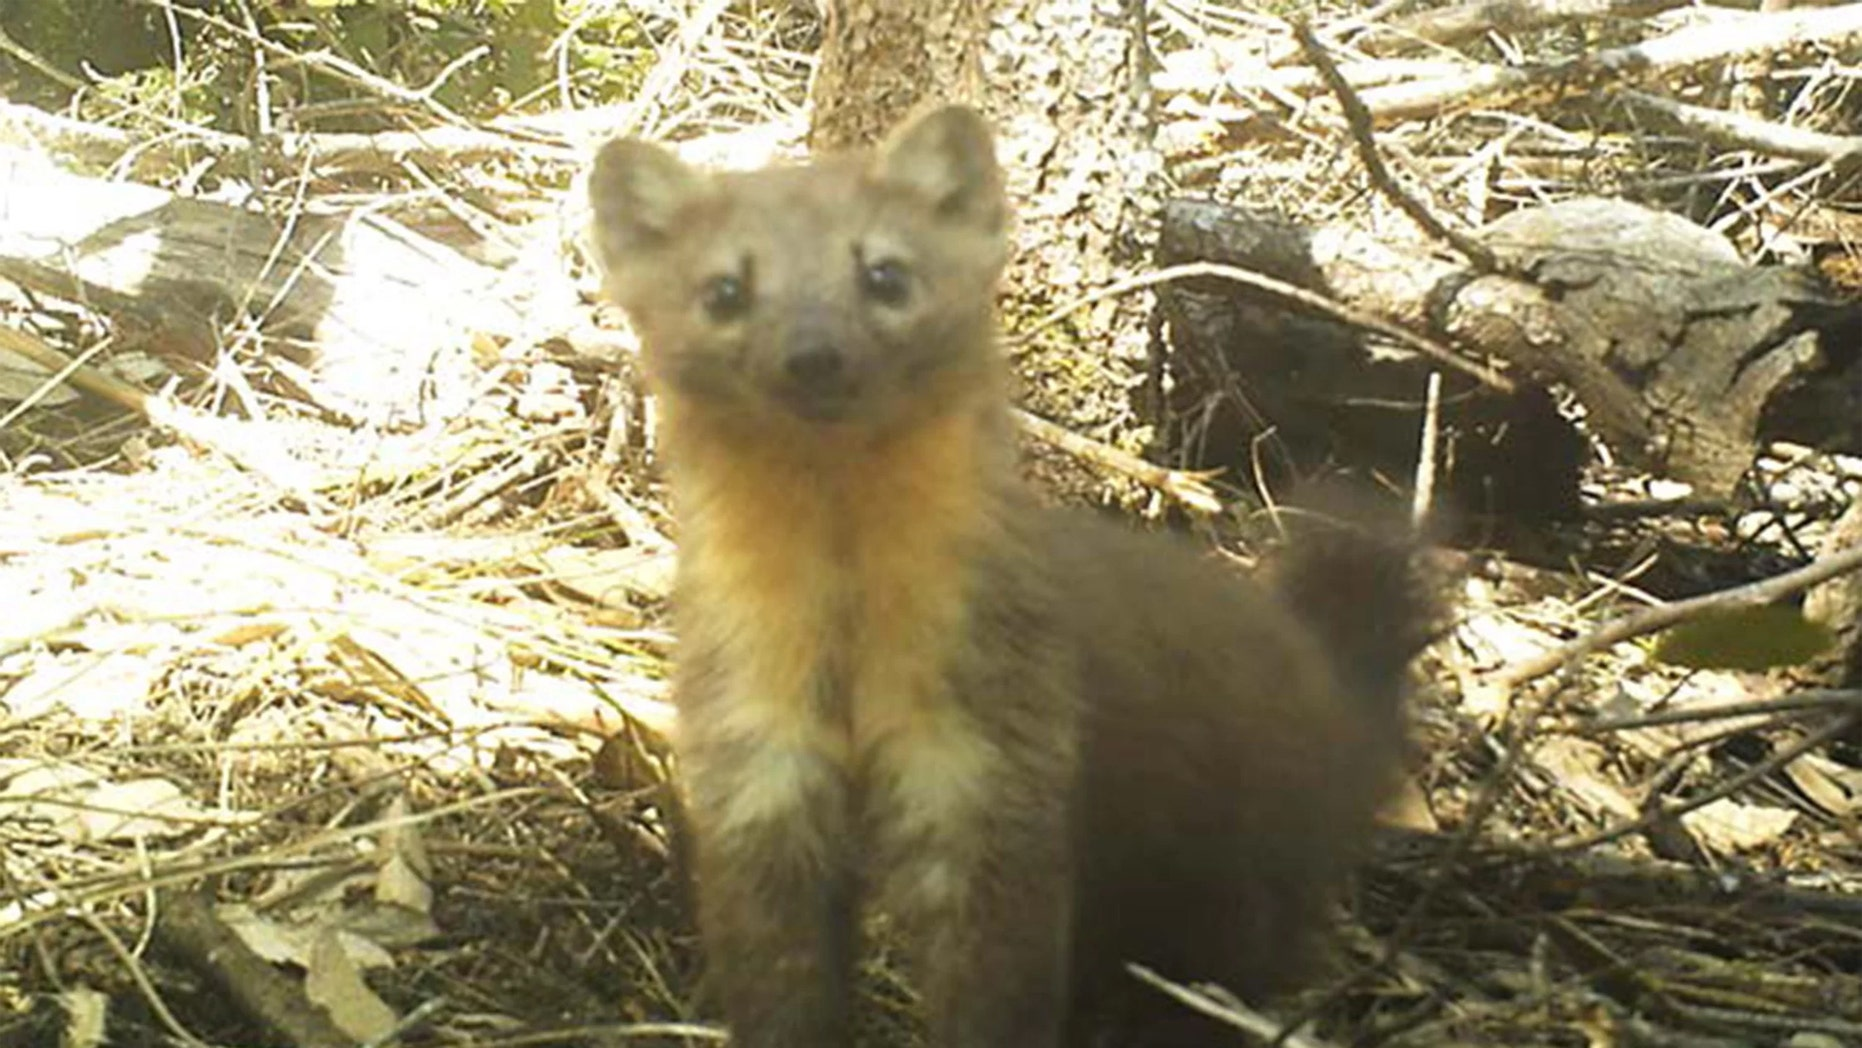 The Humboldt marten (Martes caurina humboldtensis) is an elusive forest creature that may soon be classified as endangered Credit: Charlotte Eriksson/Oregon State University